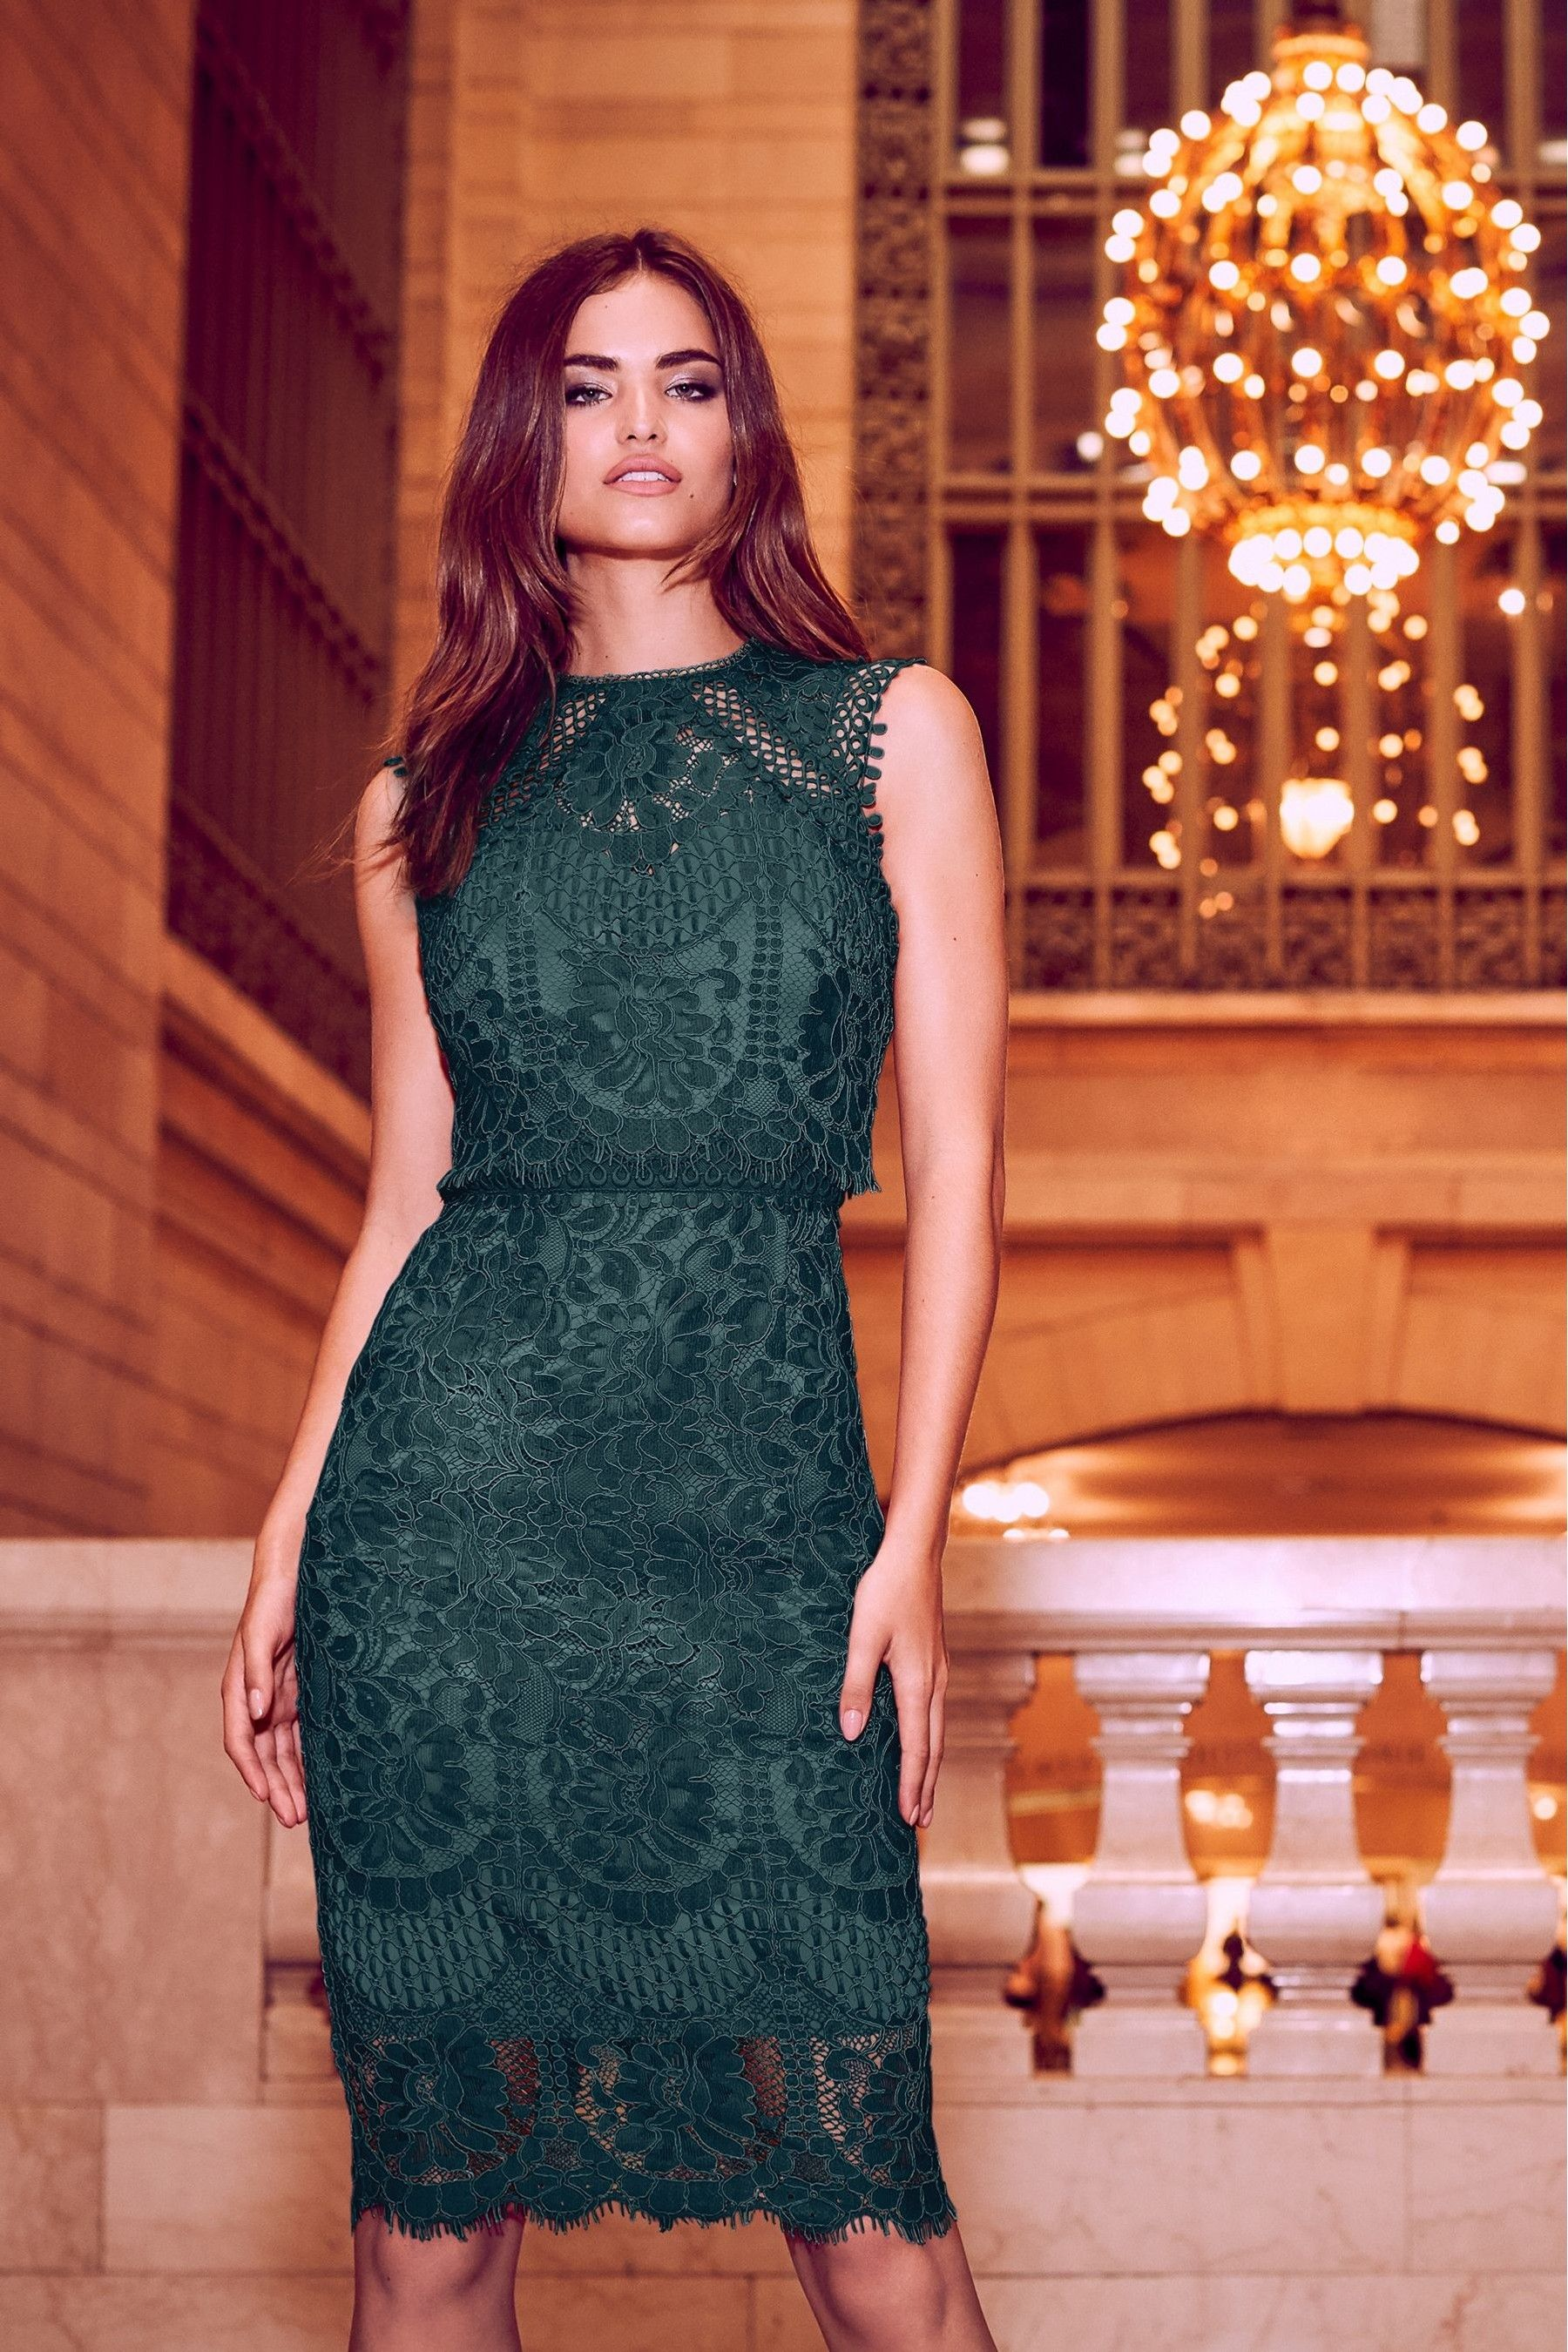 077c5a97127a Buy Lipsy VIP Lace Embroidered Midi Dress from the Next UK online shop